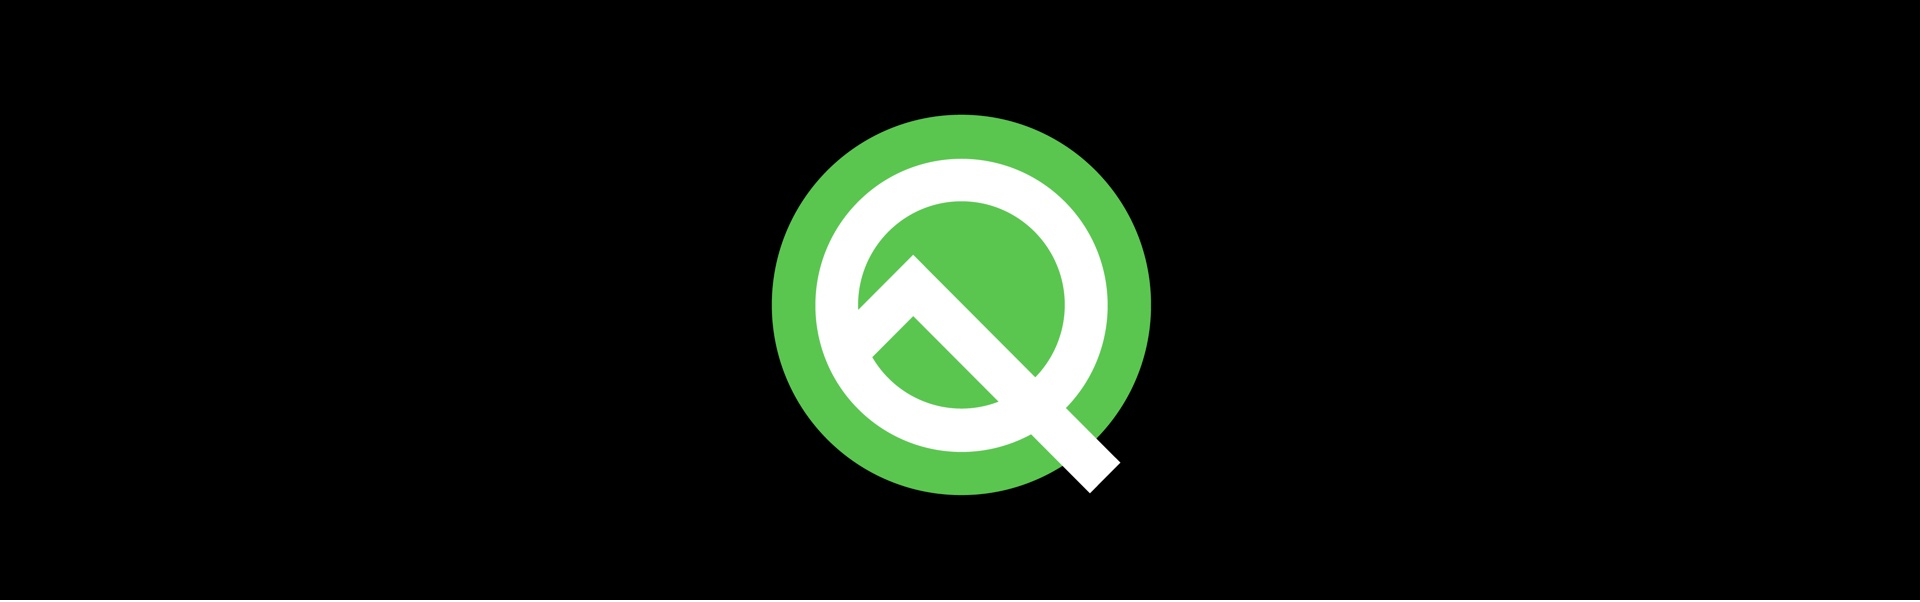 Android Q Features: What's New in Display and Under Hood?